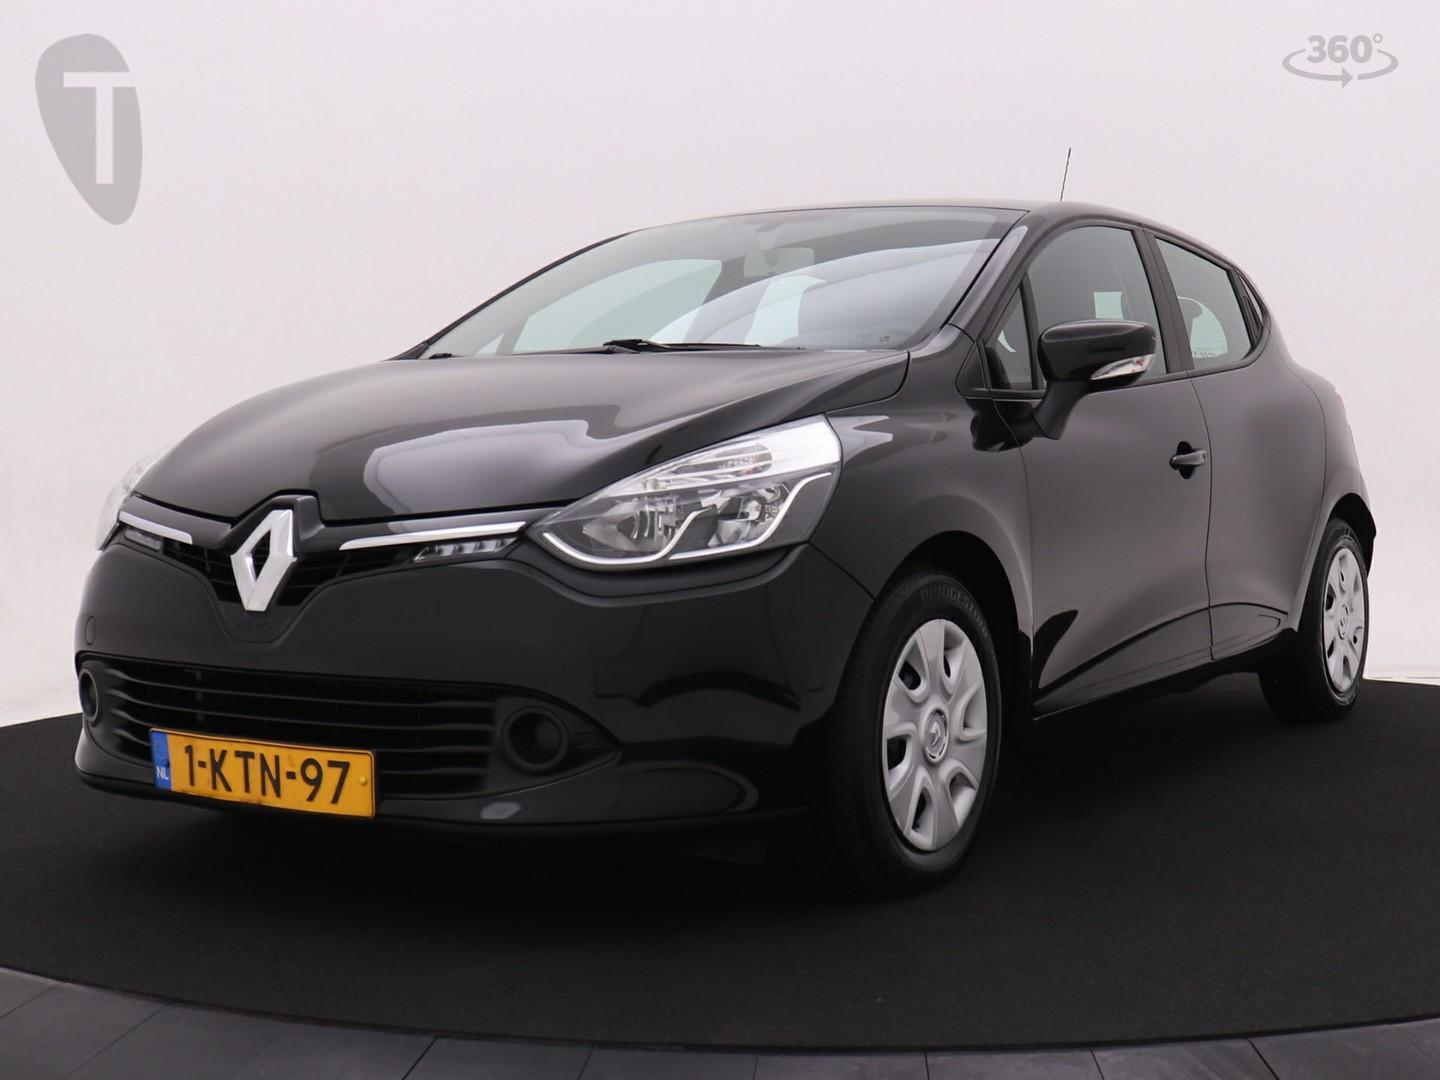 Renault Clio 1.5 dci eco expression 5drs renault clio 1.5 dci eco expression 5drs